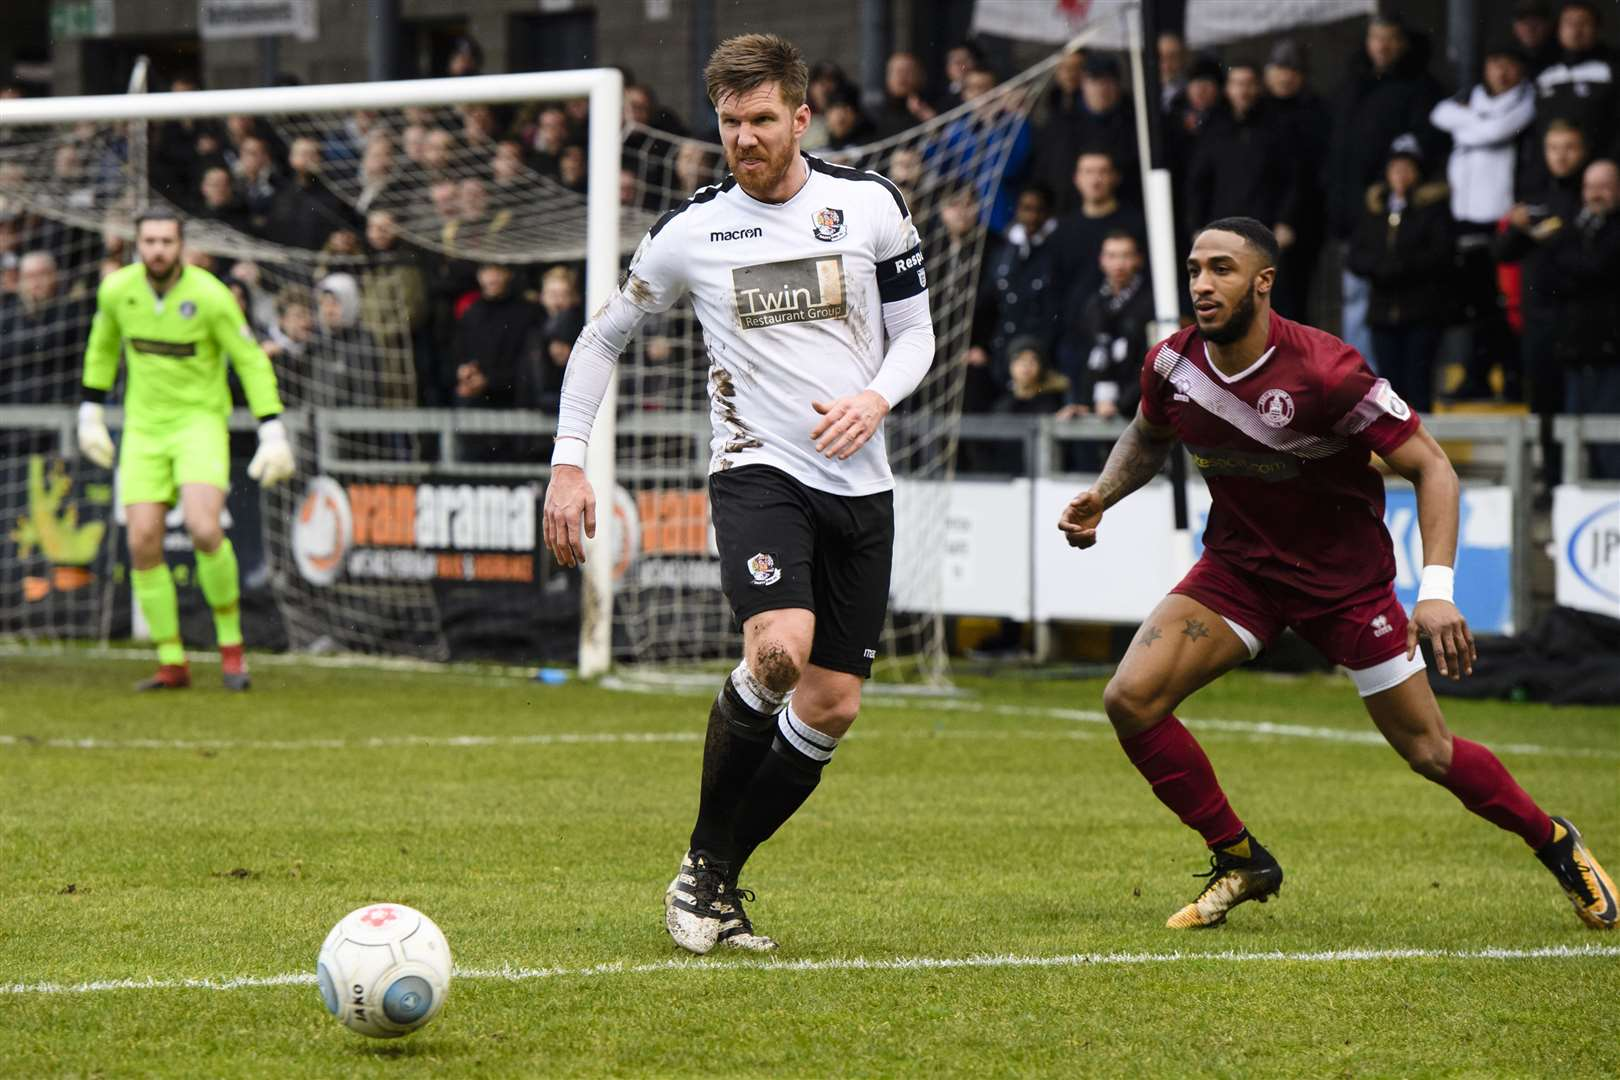 Elliot Bradbrook has played almost 450 games for Dartford Picture: Andy Payton